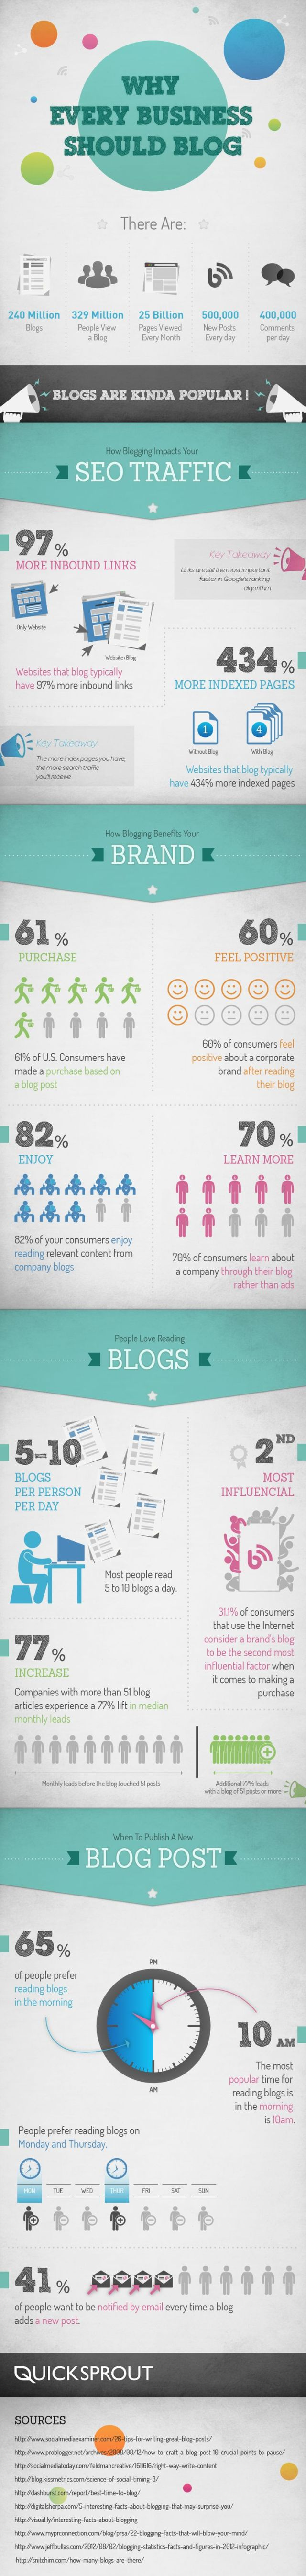 why startups should blog